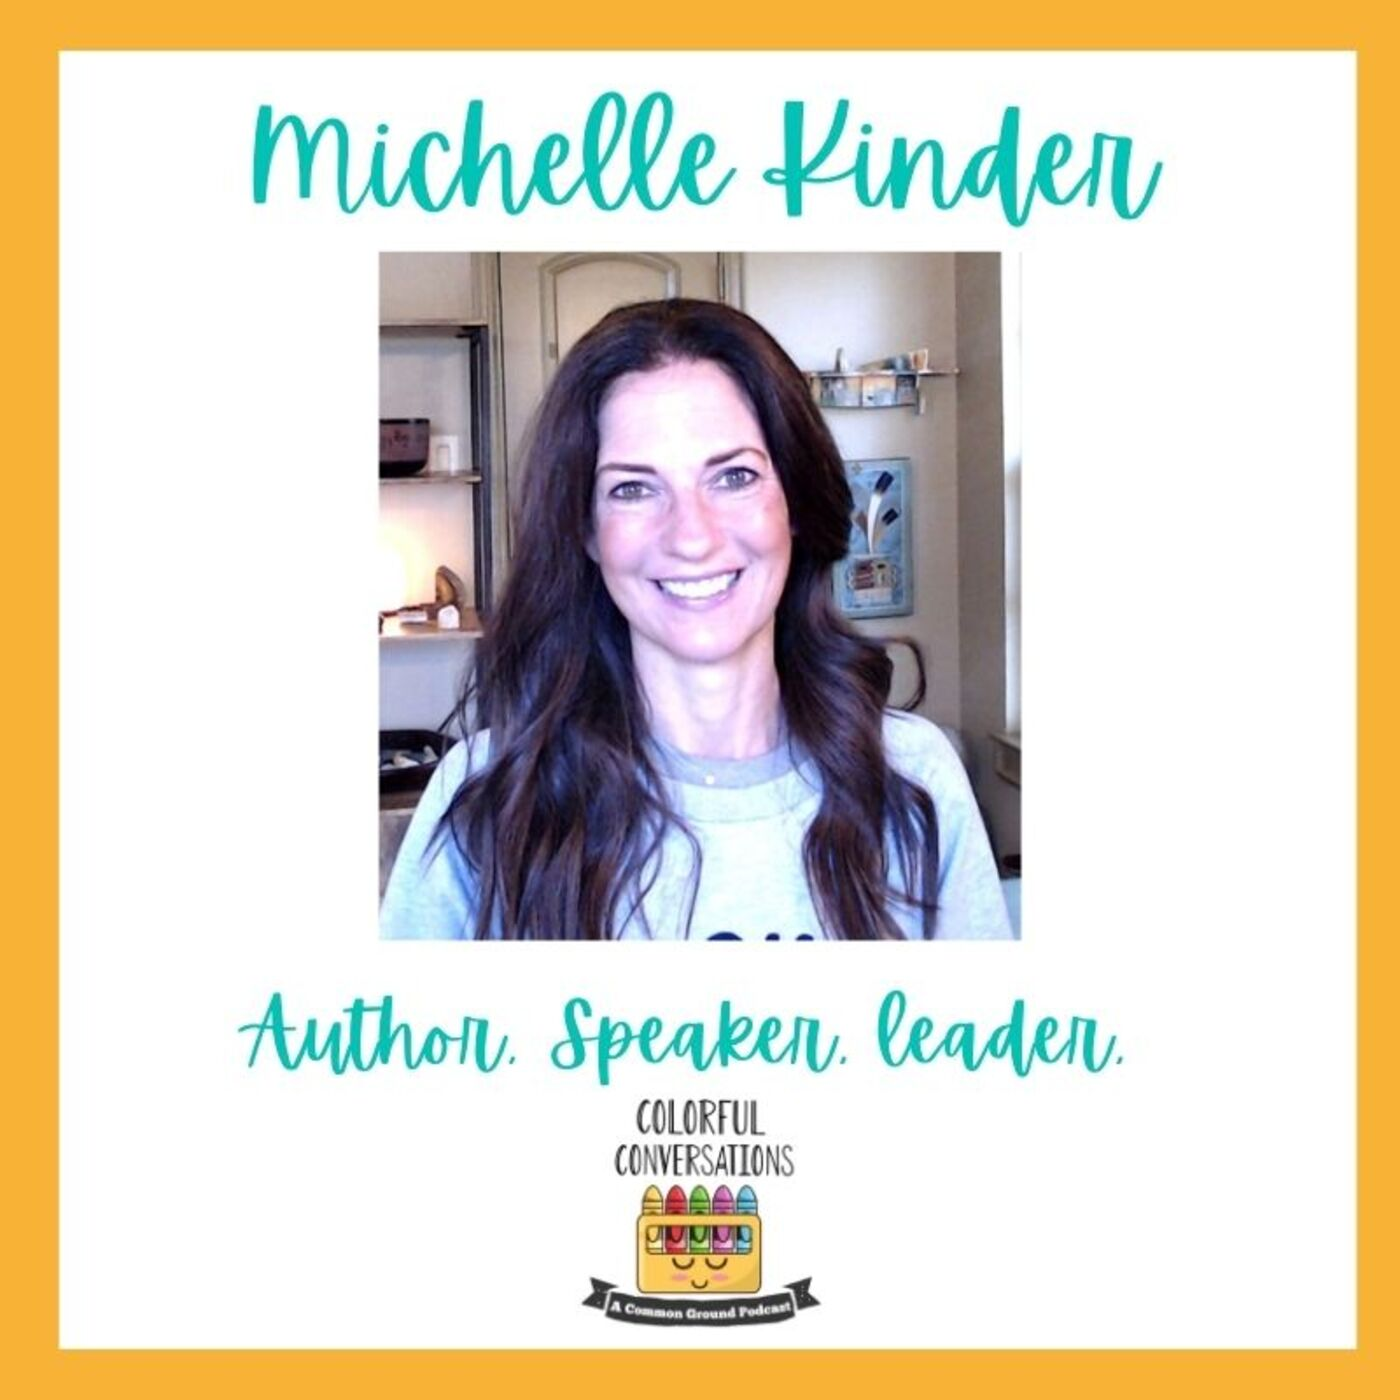 A Colorful Conversation with Michelle Kinder